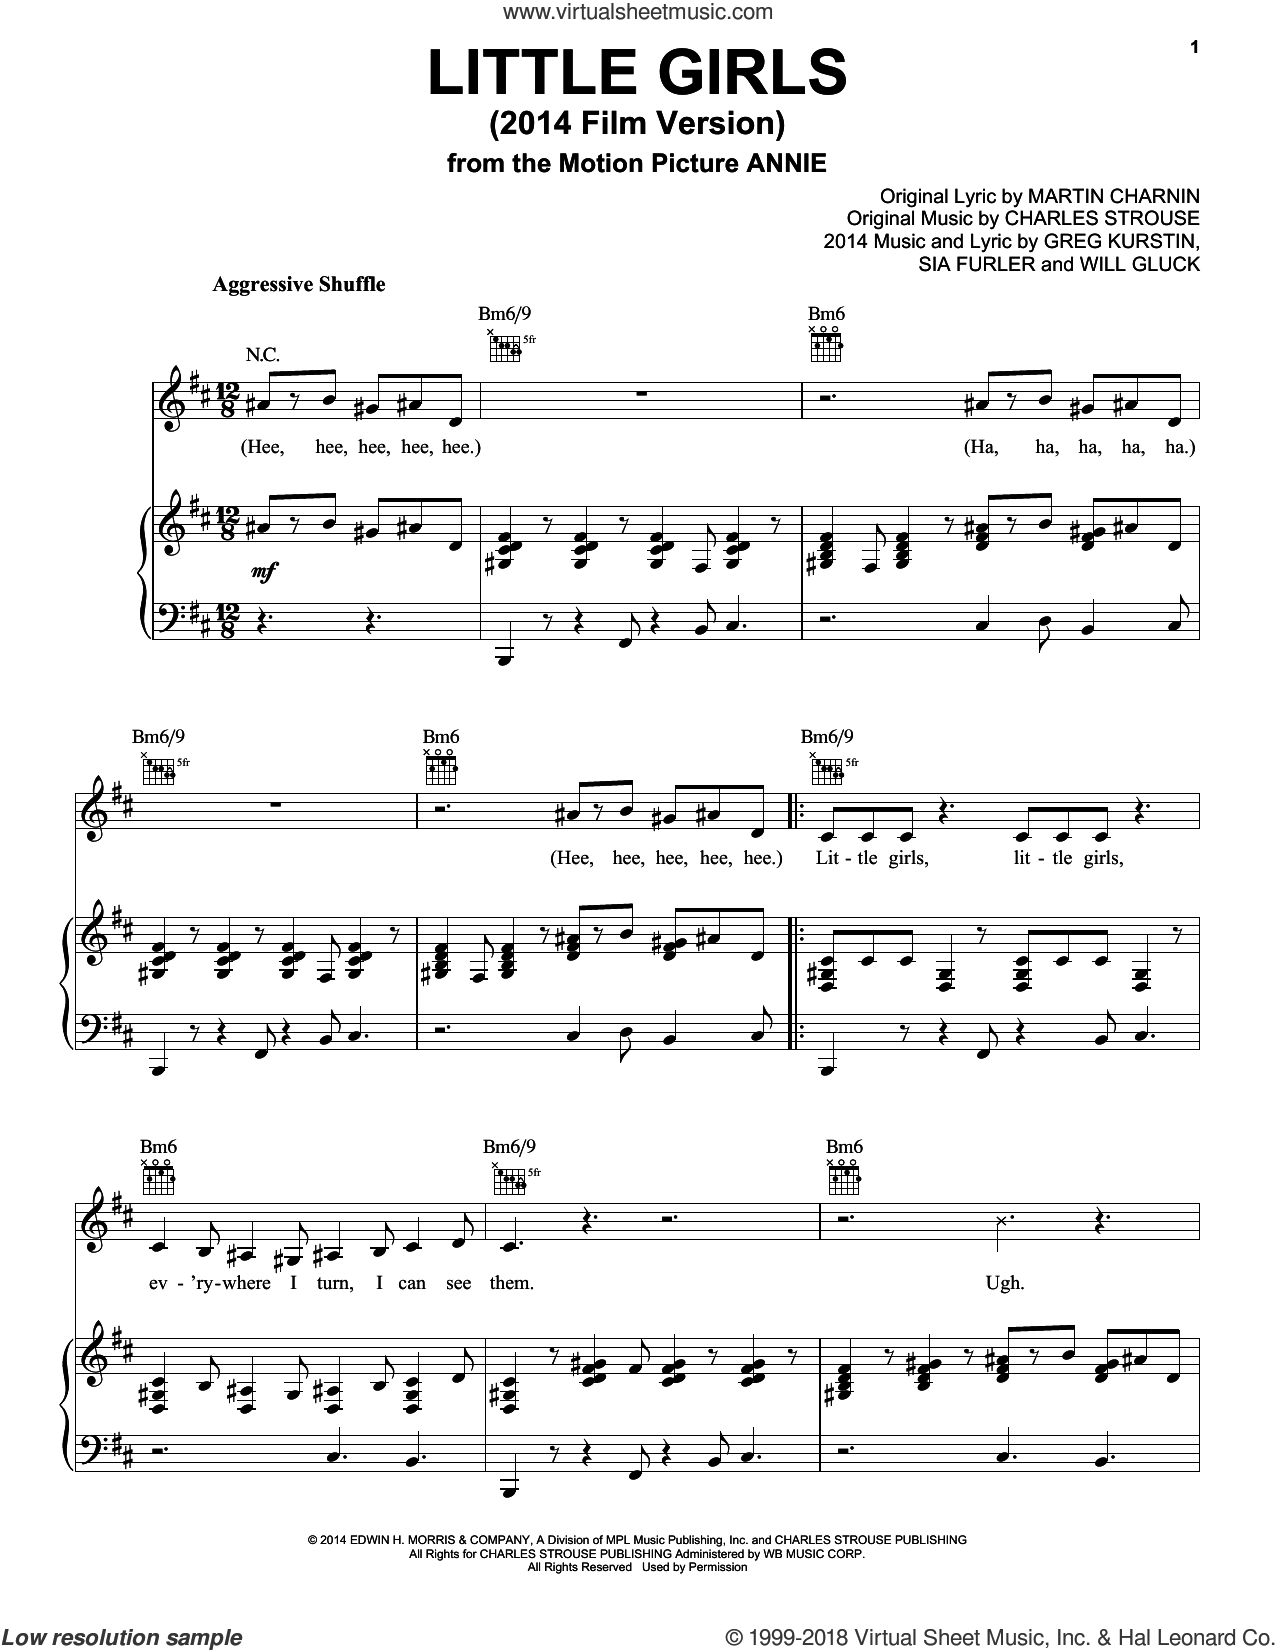 Little Girls (2014 Film Version) sheet music for voice, piano or guitar by Charles Strouse, Christoph Willibald Gluck, Greg Kurstin, Martin Charnin and Sia Furler, intermediate skill level